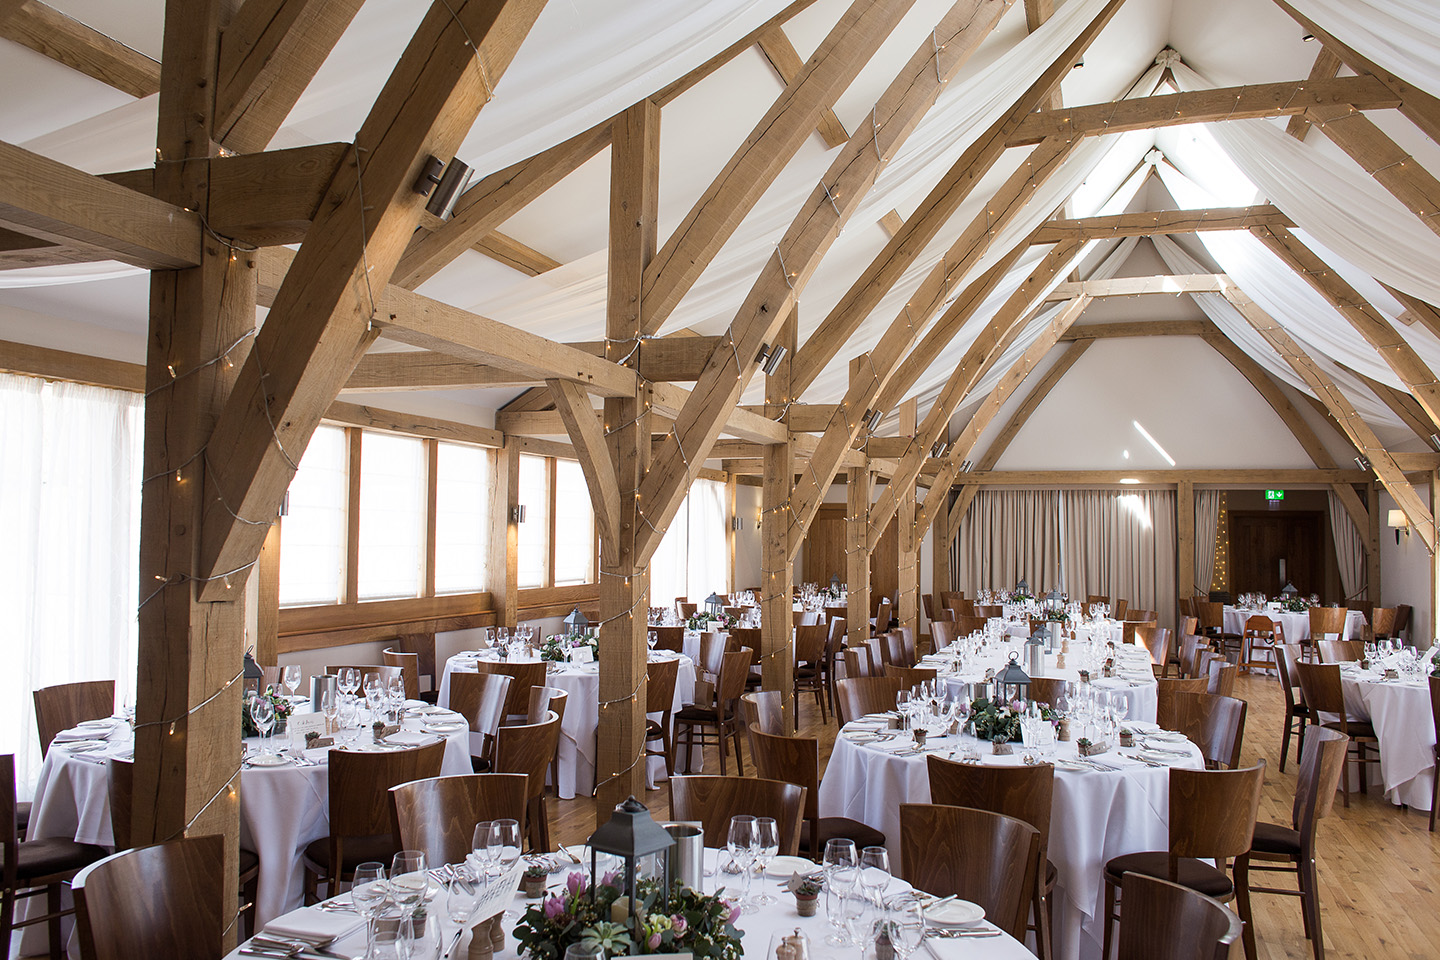 The Bridge Barn is set up for a country themed spring wedding at Bassmead Manor Brans